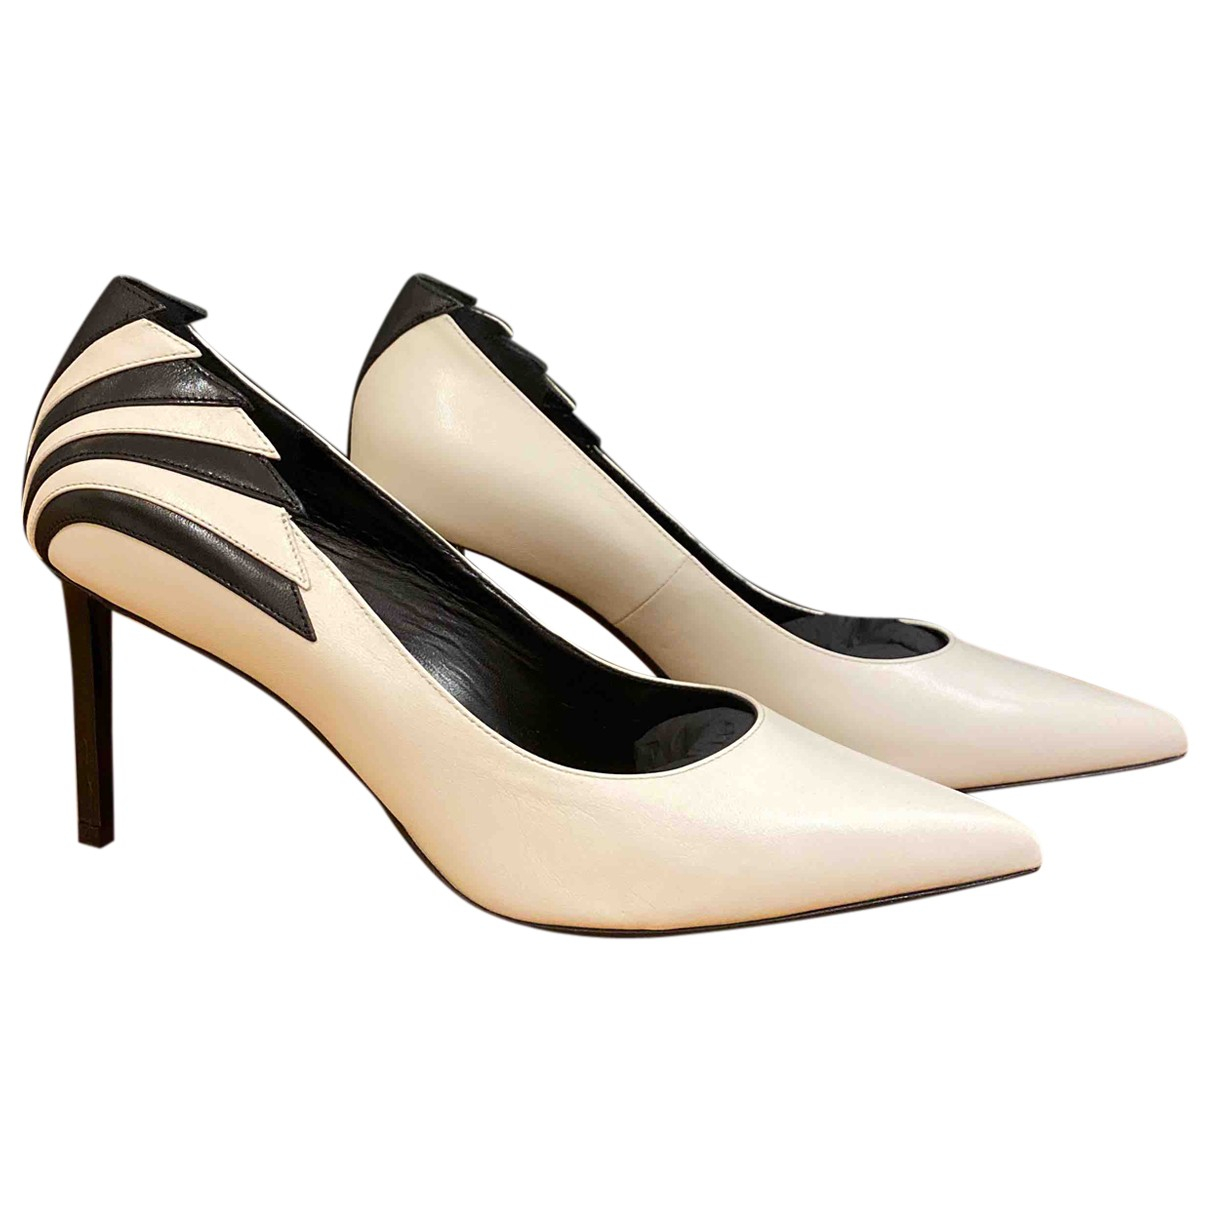 Celine Sharp White Leather Heels for Women 39 EU